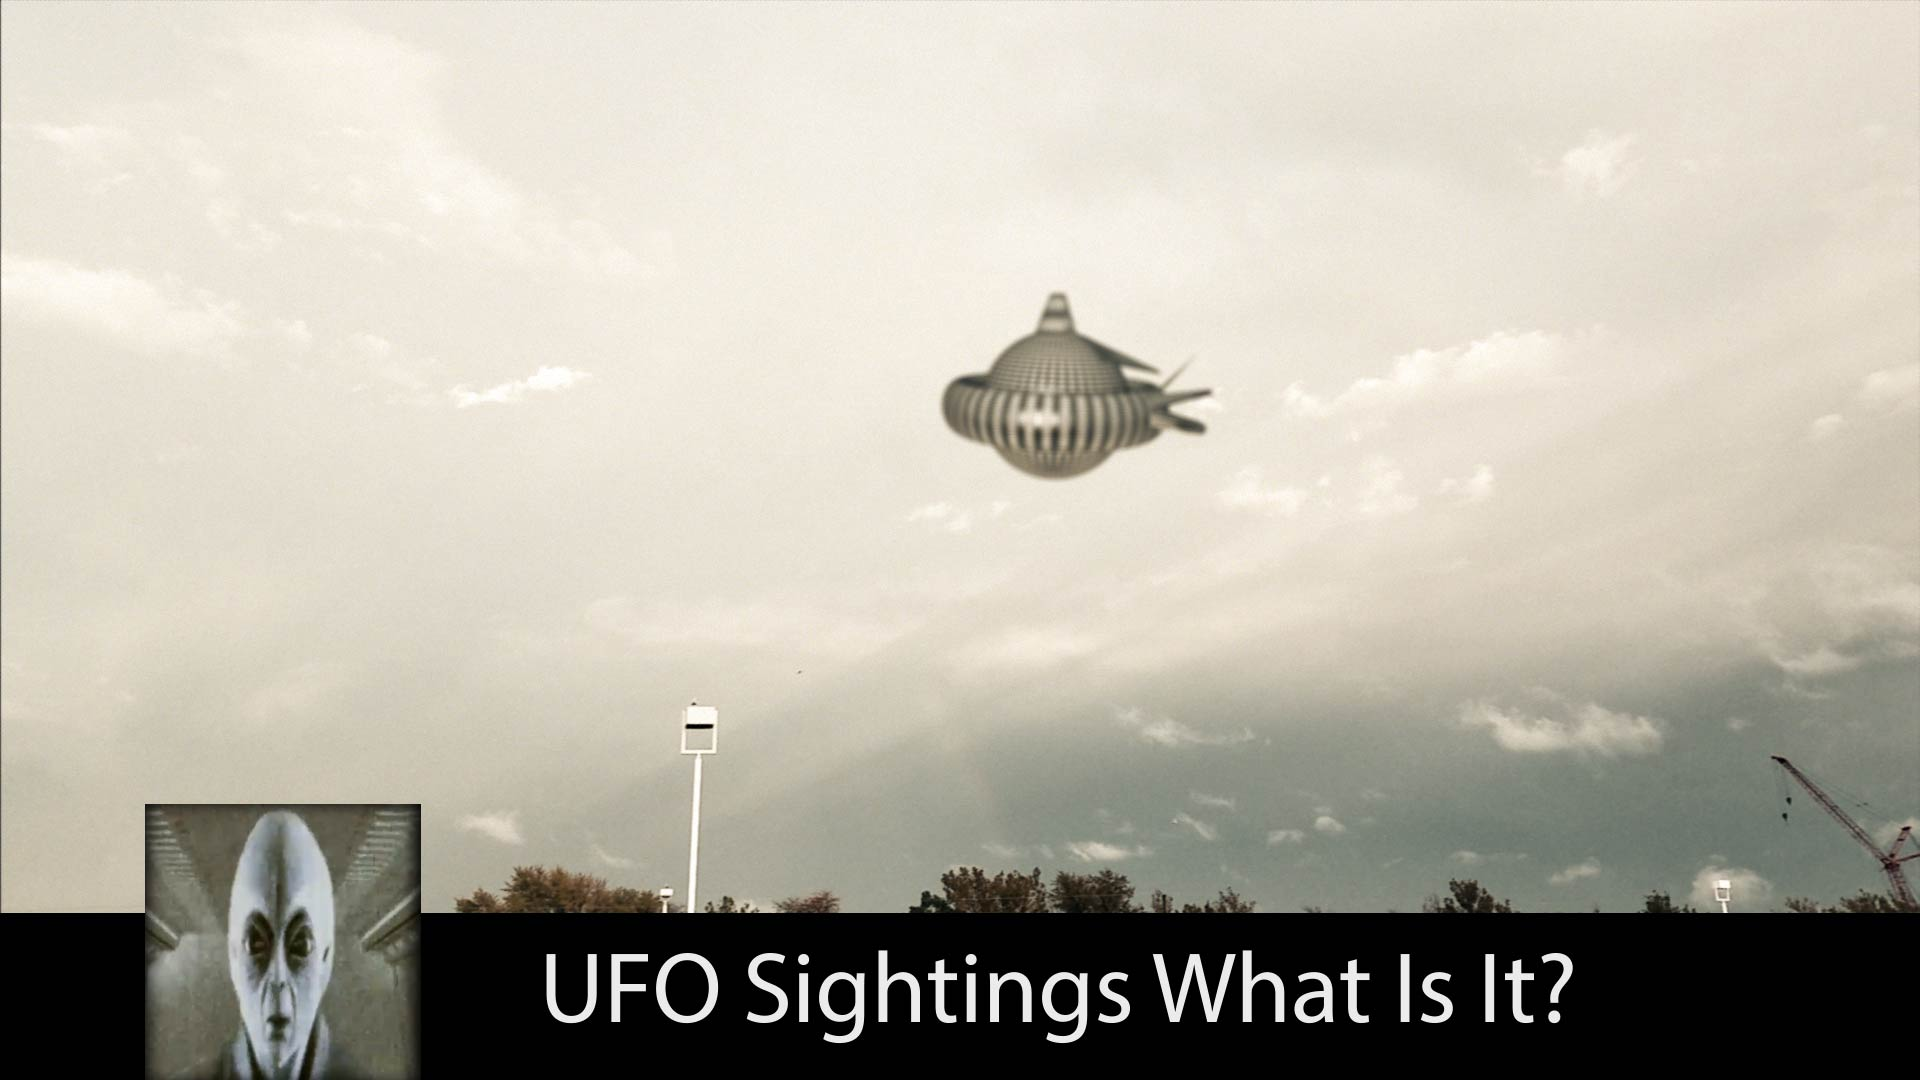 UFO Sightings What Is It November 4th 2017